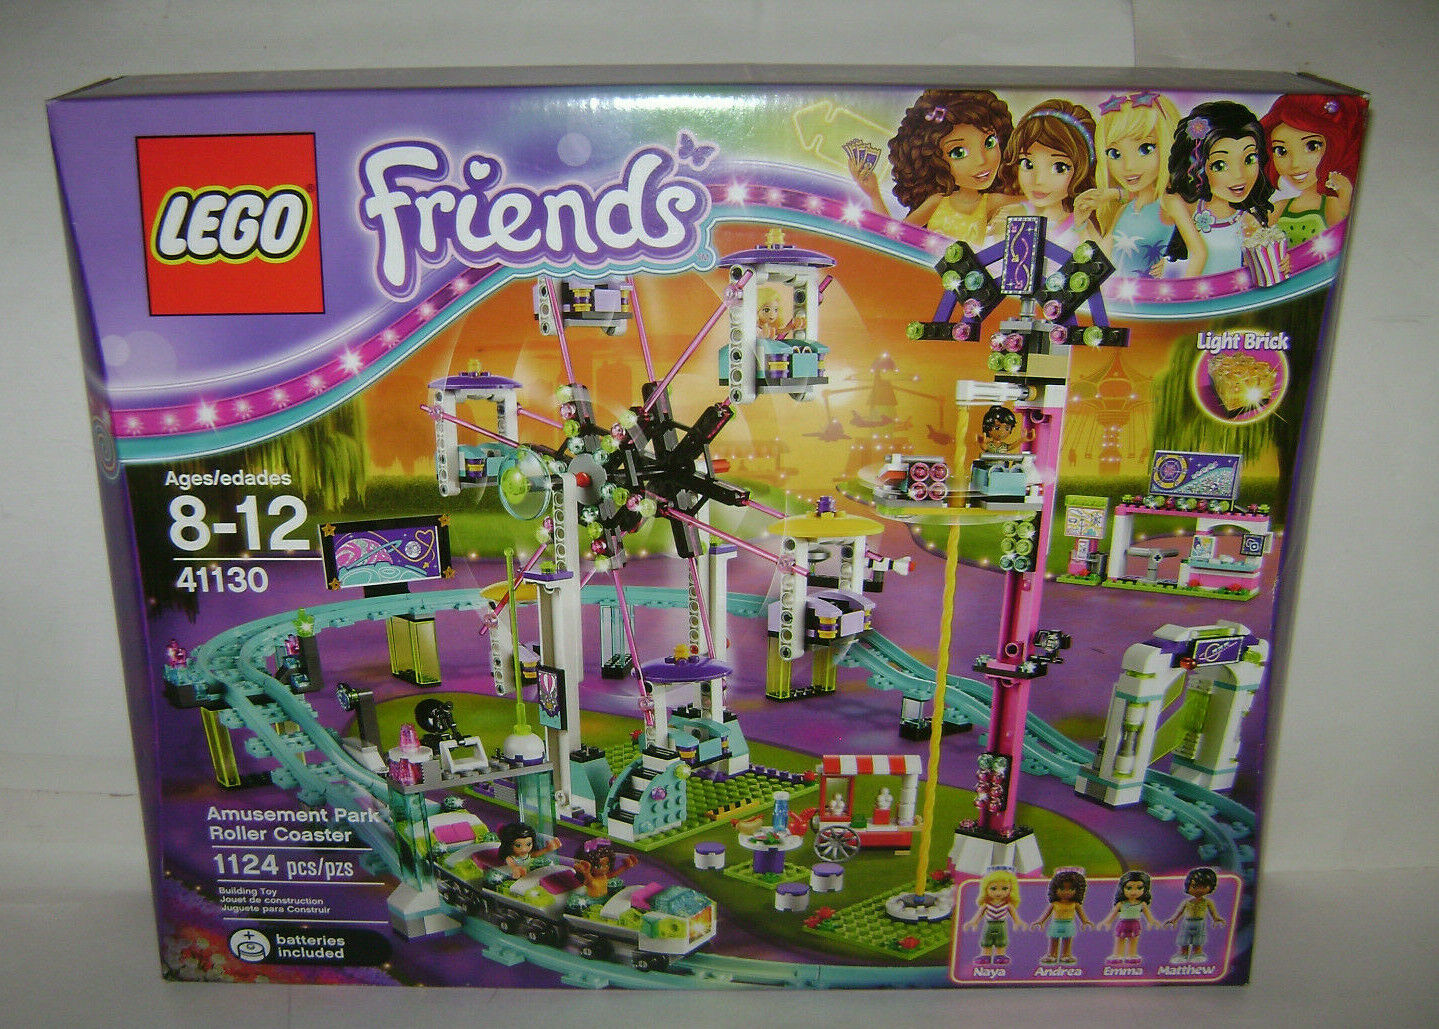 NEW 41130 Lego FRIENDS Amusement Park Roller Coaster Building Toy BOX RETIRED A